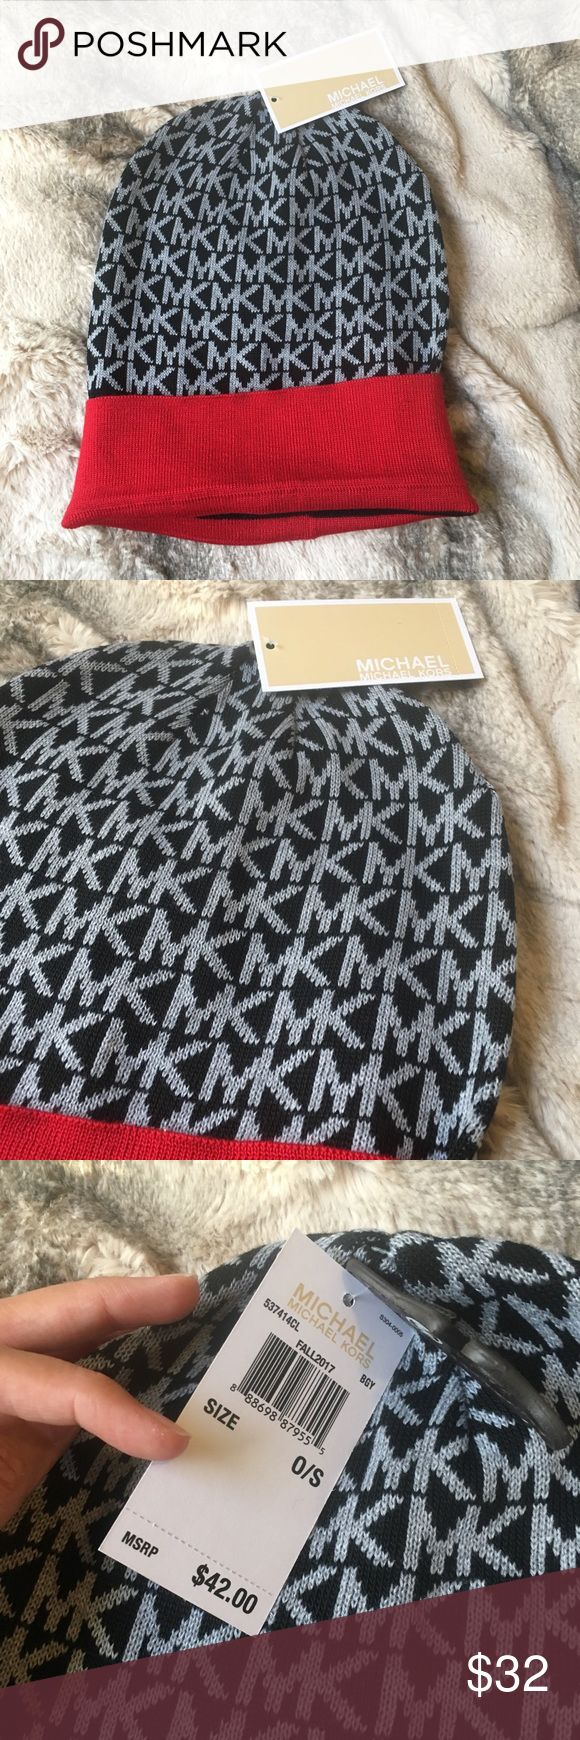 Michael Kors Beanie Hat BRAND NEW WITH TAGS Selling an authentic Michael Kors beanie. Brand new with tags! Can have a red lining or be rolled more for a black lining! Great for a Christmas present or gift idea! MICHAEL Michael Kors Accessories